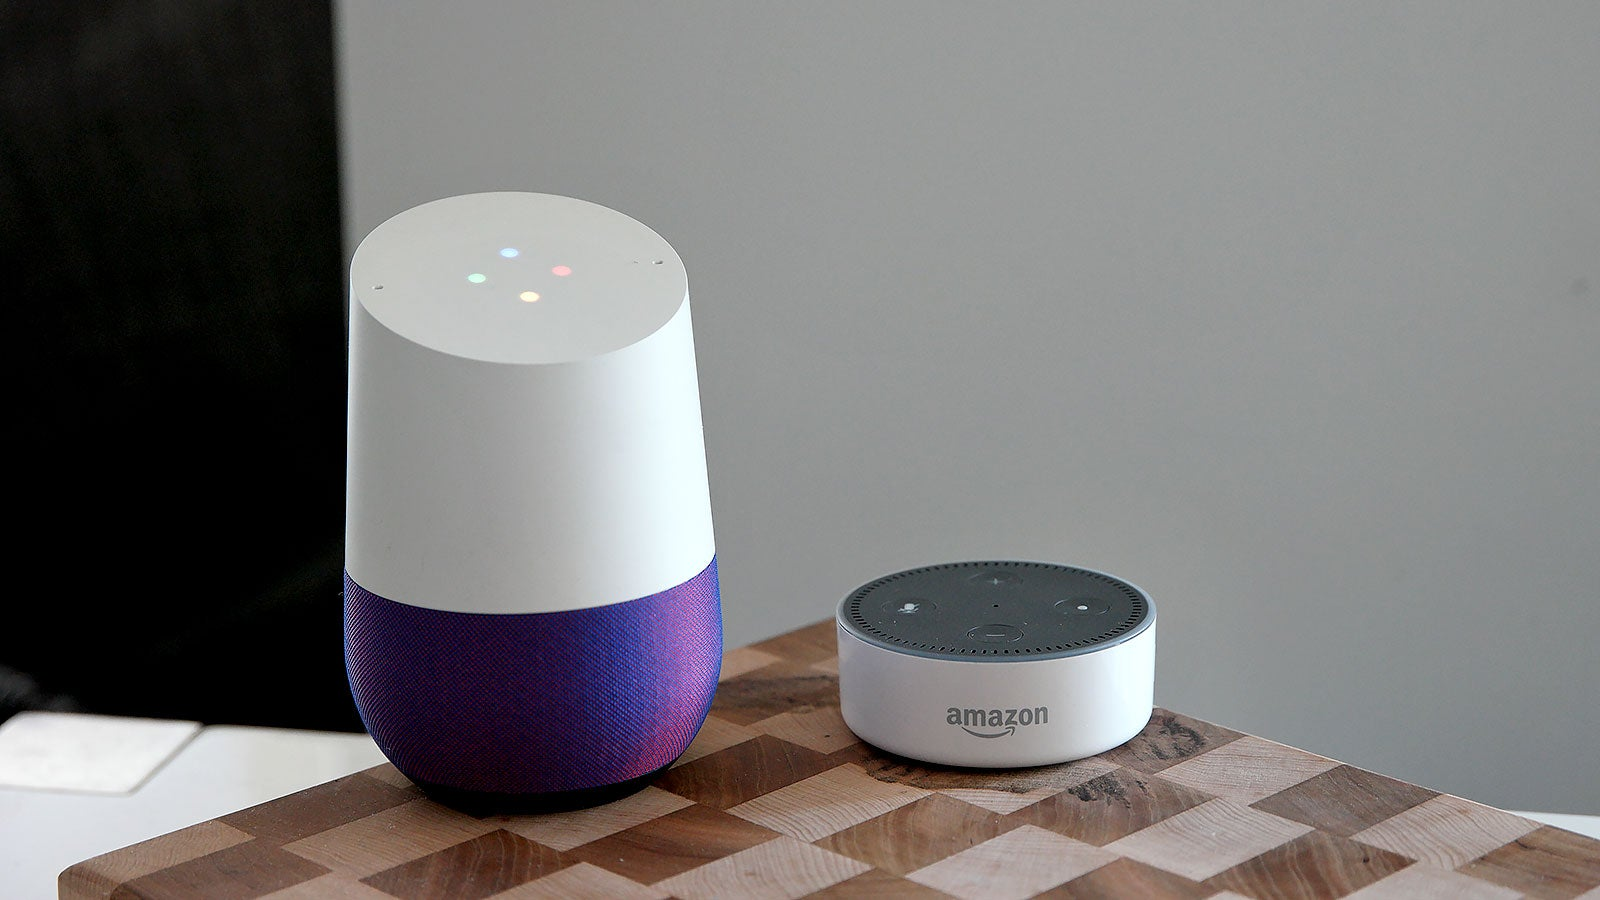 amazon amazon-echo consumer-tech digital-assistants feature google google-assistant google-home google-wins-its-first-big-smart-speaker-battle smart-speakers